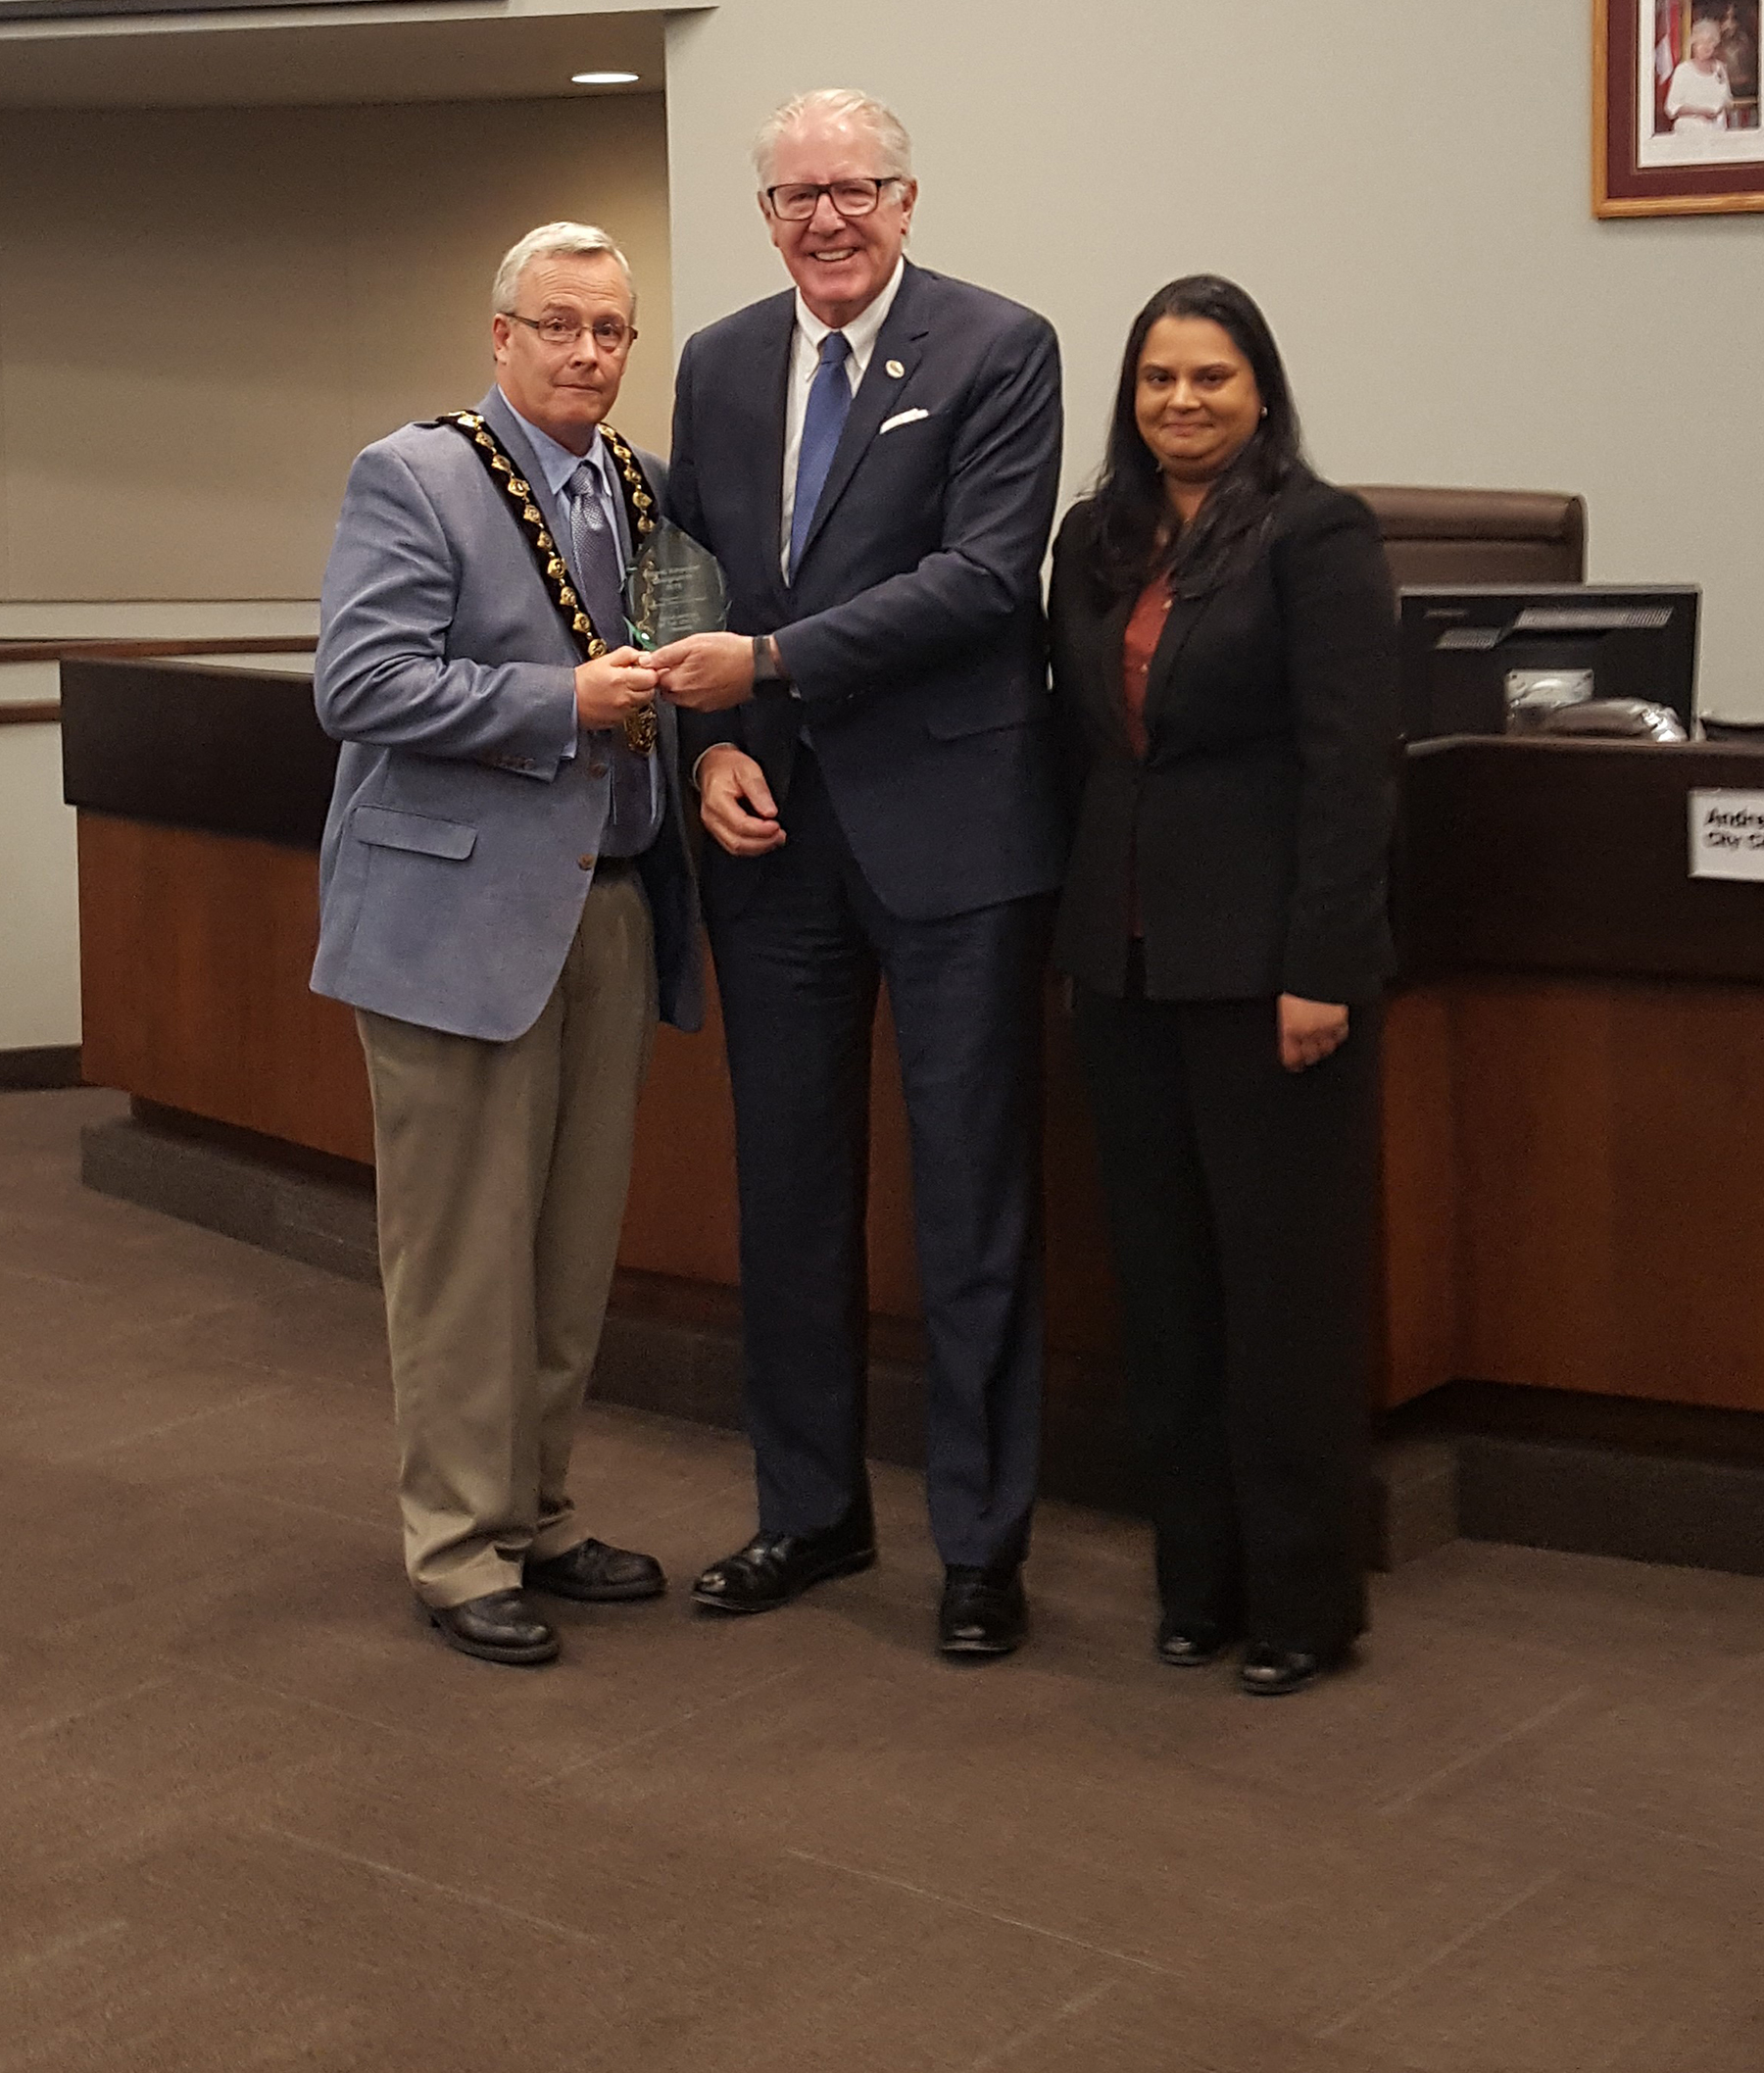 City of Oshawa is presented with the 2016 Ontario Employer Designation